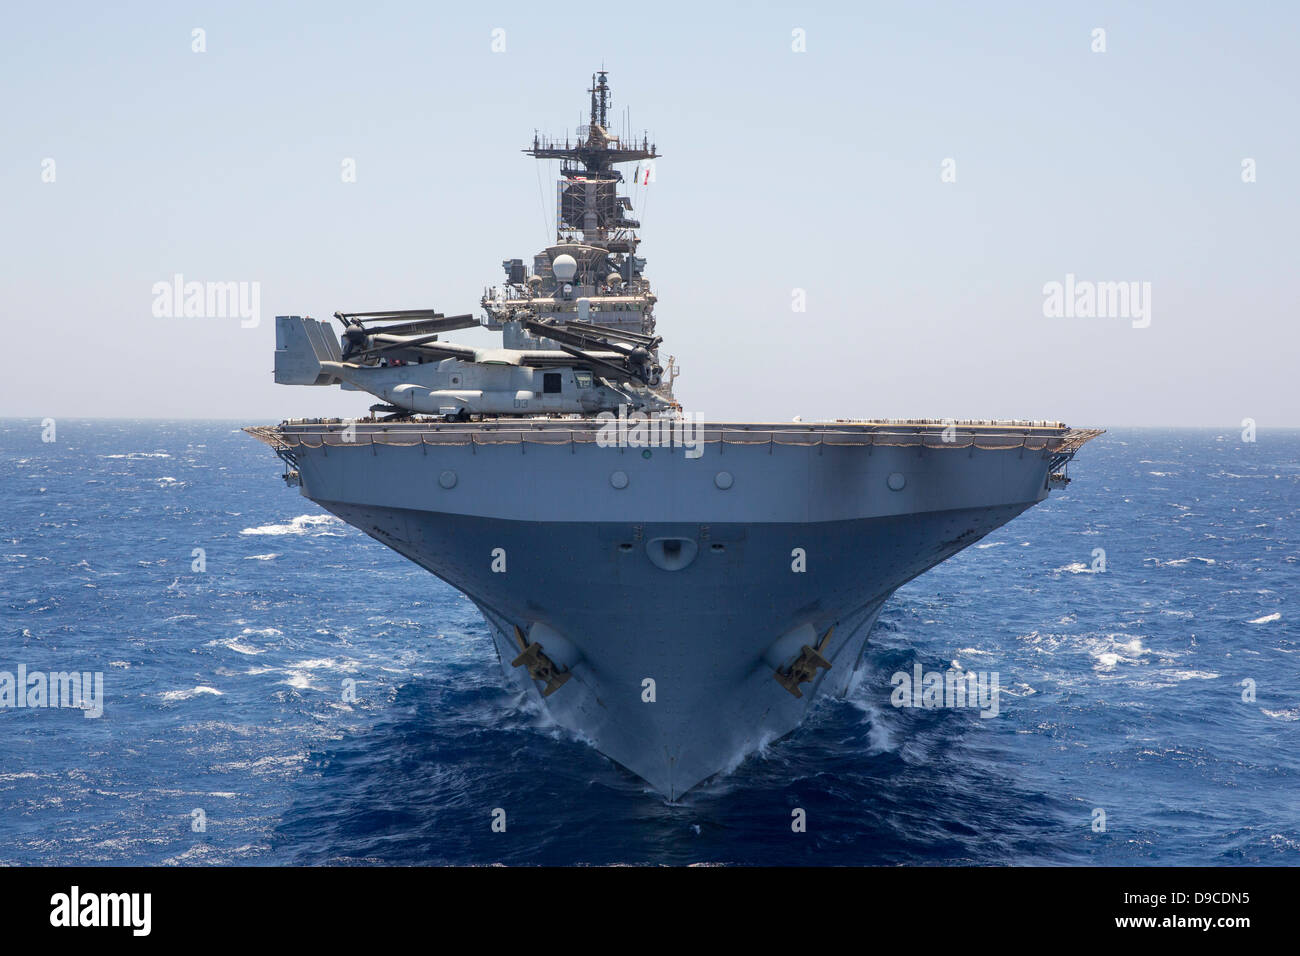 US Navy amphibious assault ship USS Kearsarge during operations June 16, 2013 in the Red Sea. Stock Photo